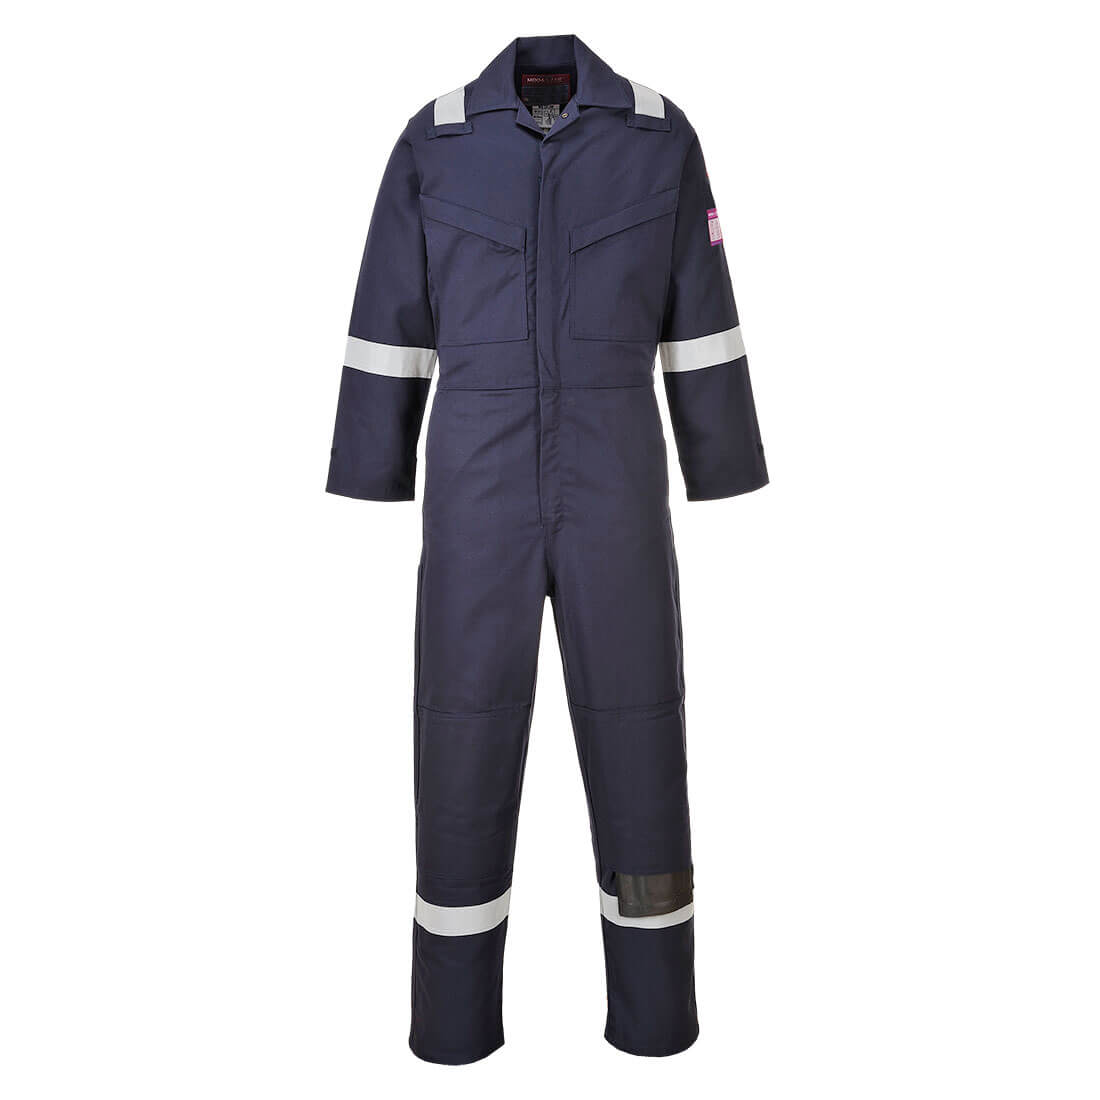 Image of Modaflame Mens Flame Resistant Overall Navy 2XL